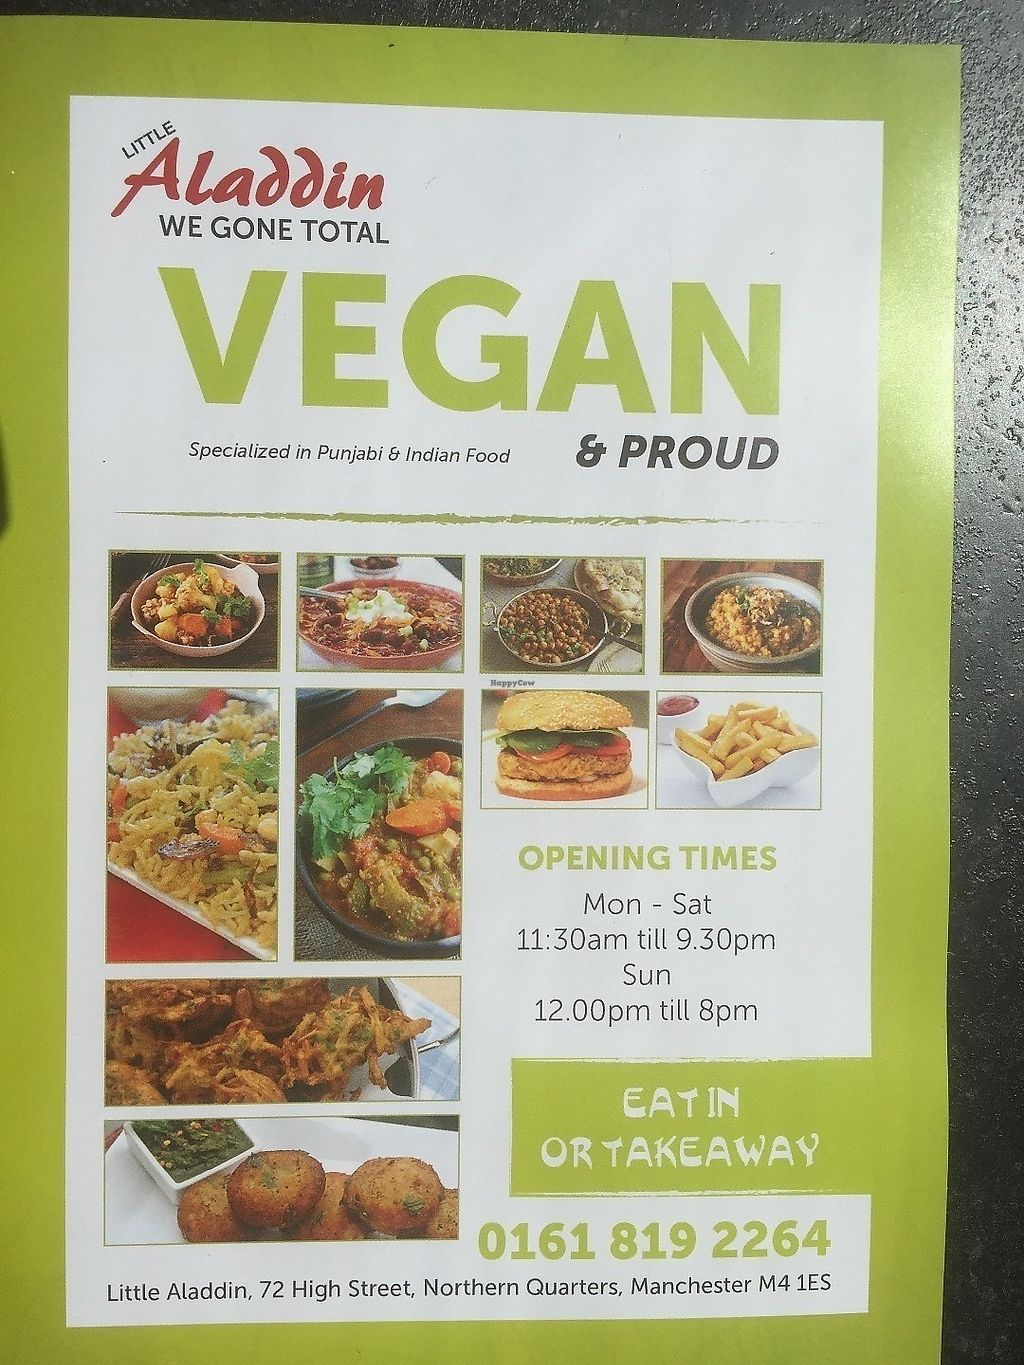 """Photo of Little Aladdin  by <a href=""""/members/profile/Hina"""">Hina</a> <br/>Aladdin's menu front  <br/> June 17, 2017  - <a href='/contact/abuse/image/93477/270027'>Report</a>"""